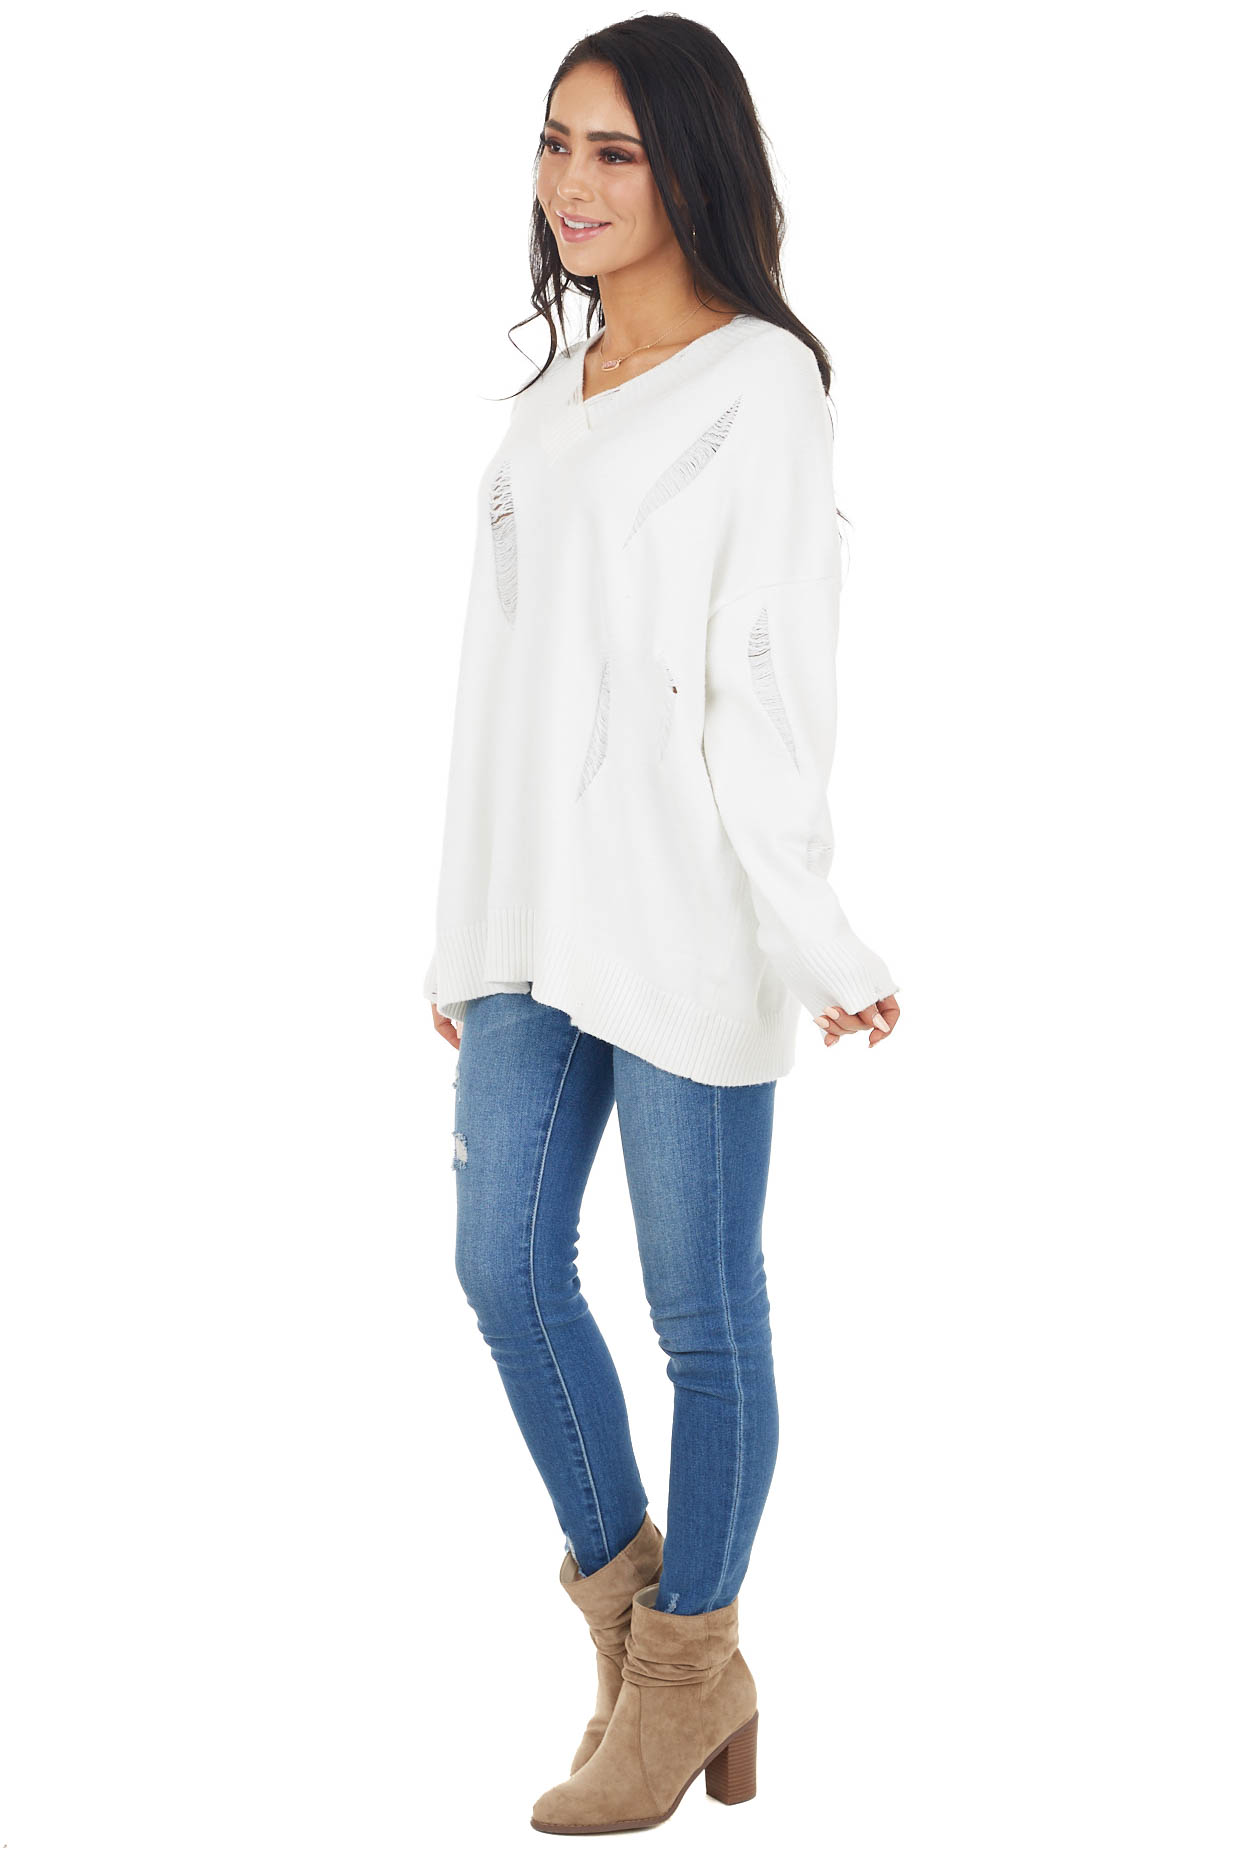 Off White Long Sleeve Knit Sweater with Distressed Details